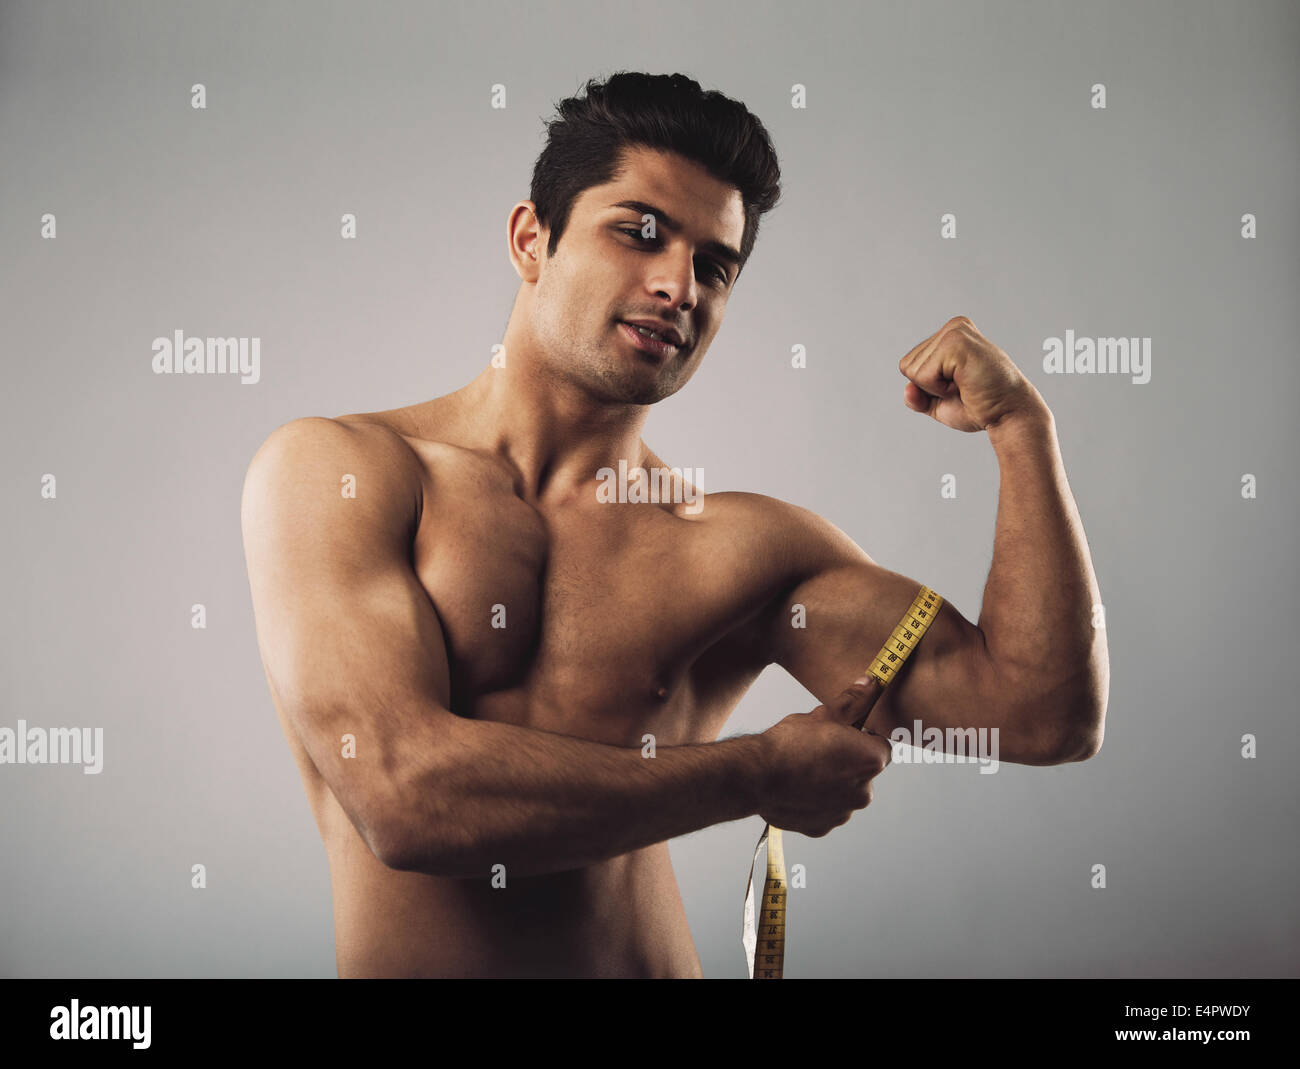 Fit hispanic male model measuring his body. Masculine young male measuring biceps with tape measure on grey background. Stock Photo